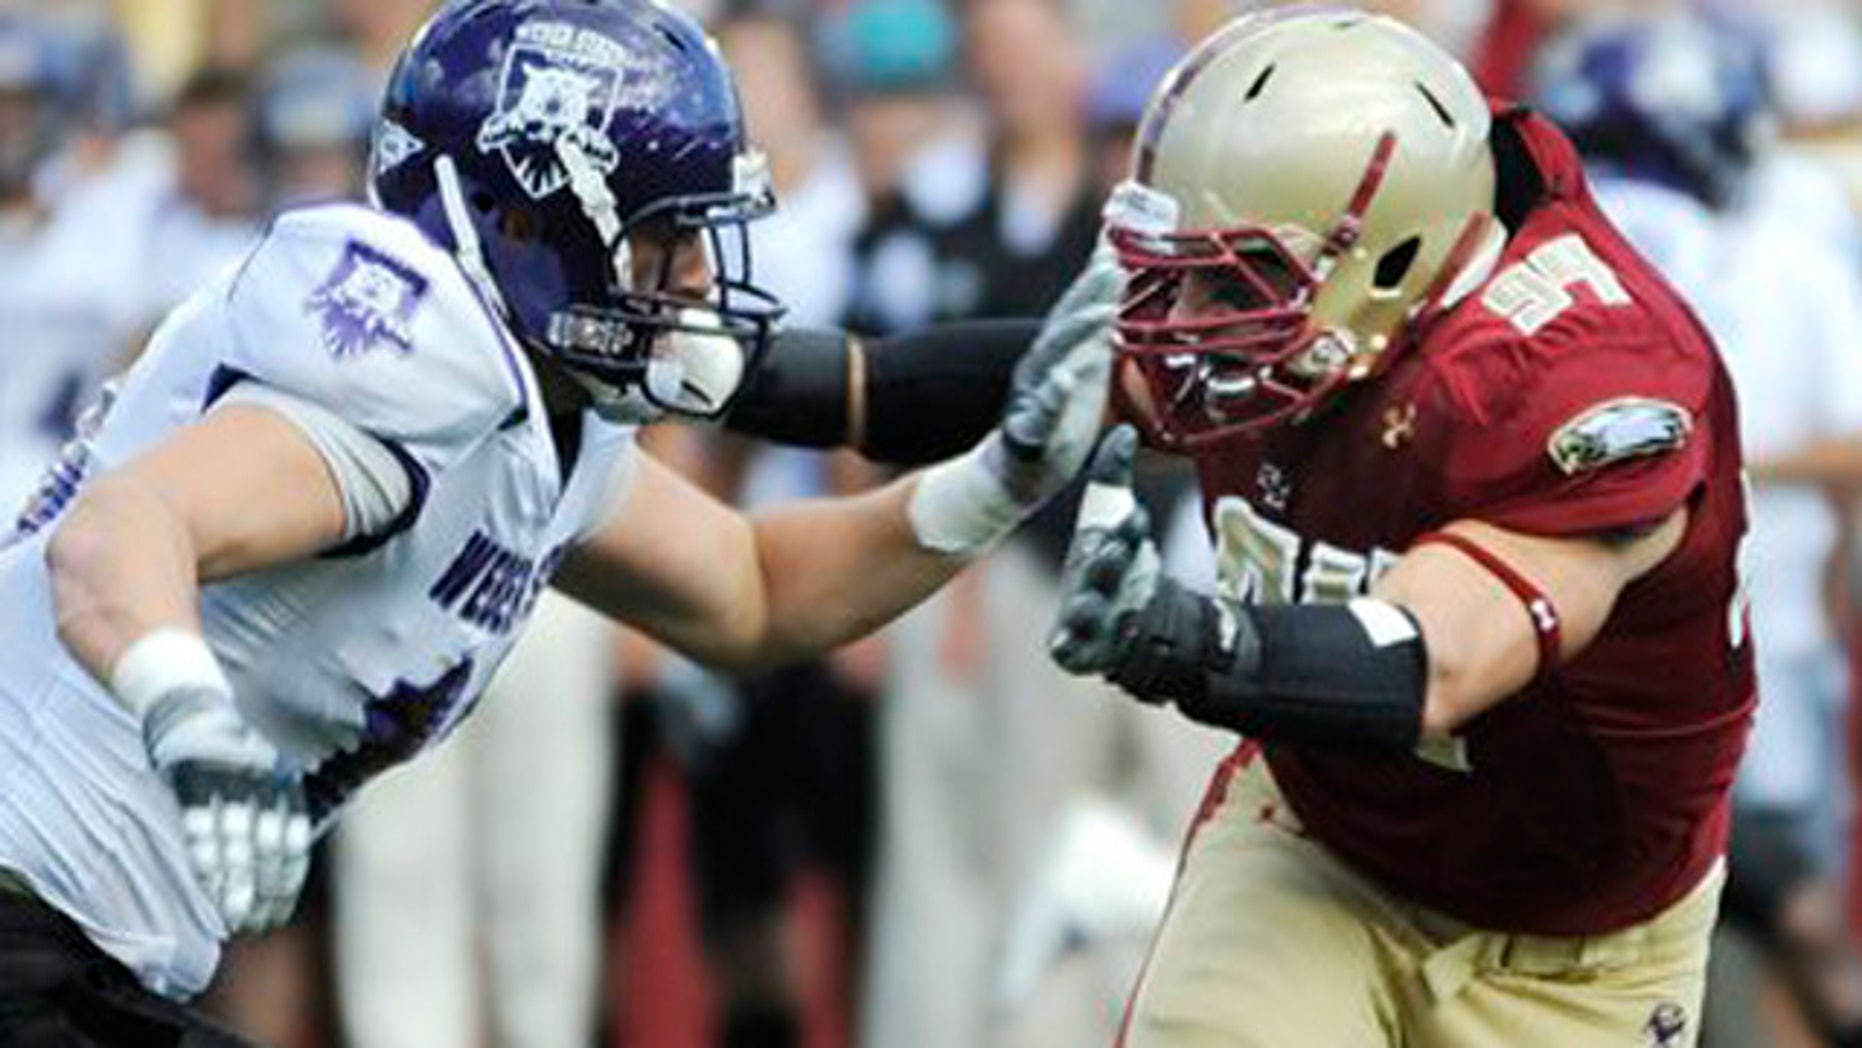 In this Sept. 4, 2010, file photo, Boston College's Mark Herzlich, right, rushes against Weber State's Brian Jankowski during an NCAA college football game in Boston. Herzlich is heading into the NFL draft after missing a season with BC because of cancer. The linebacker returned to play in 2010 and is one of 25 college players scheduled to attend the draft in New York that begins Thursday night, April 27.